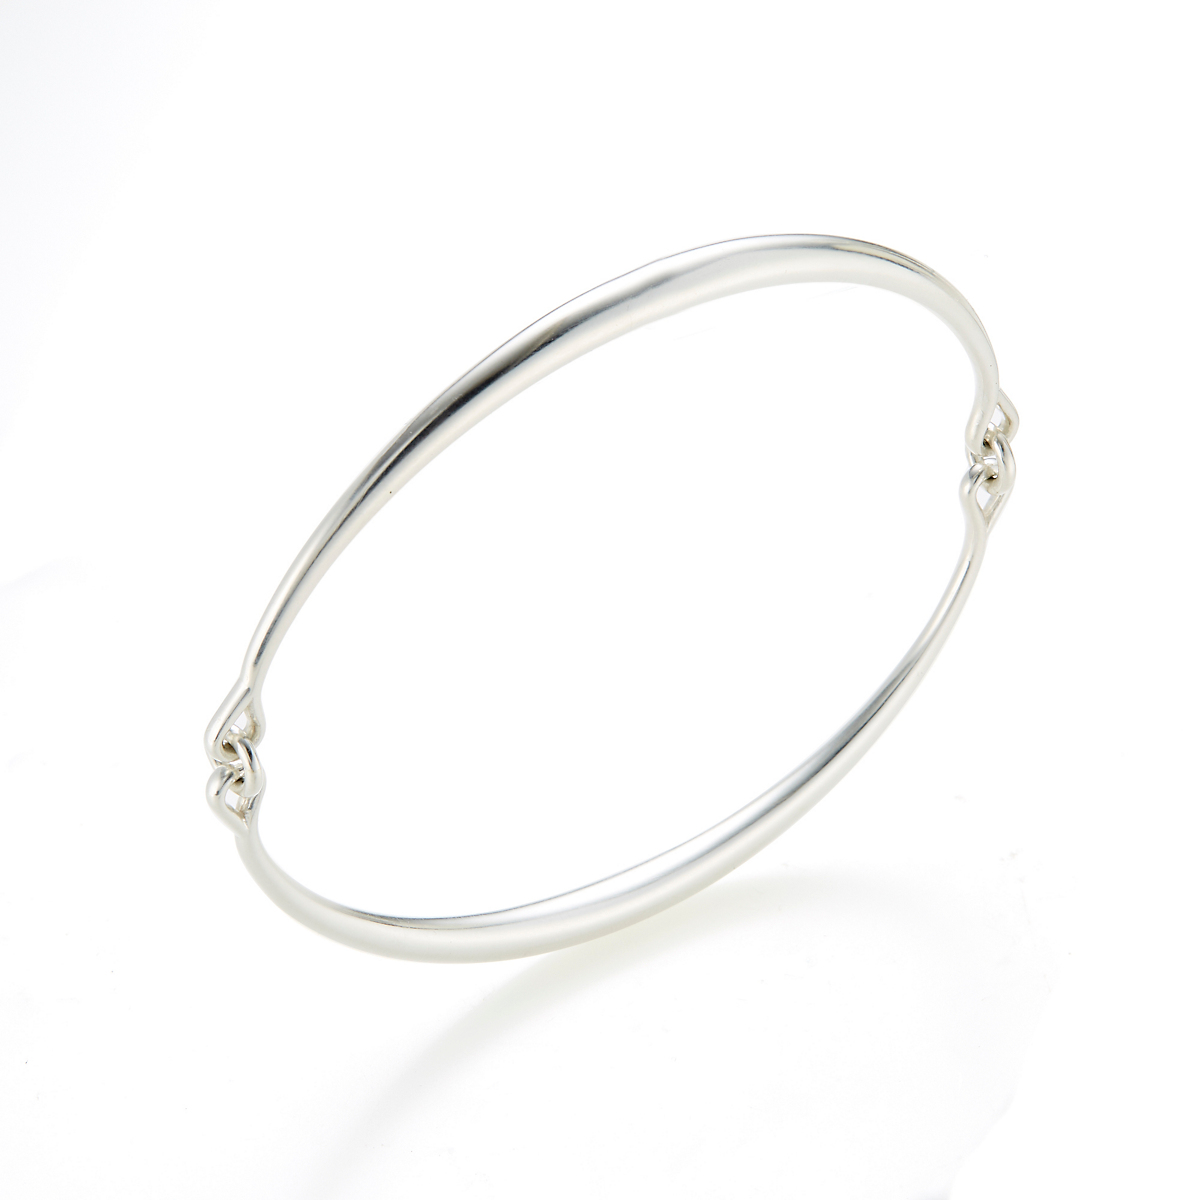 jewelry en bracelets bangle honeycombed silver bangles large